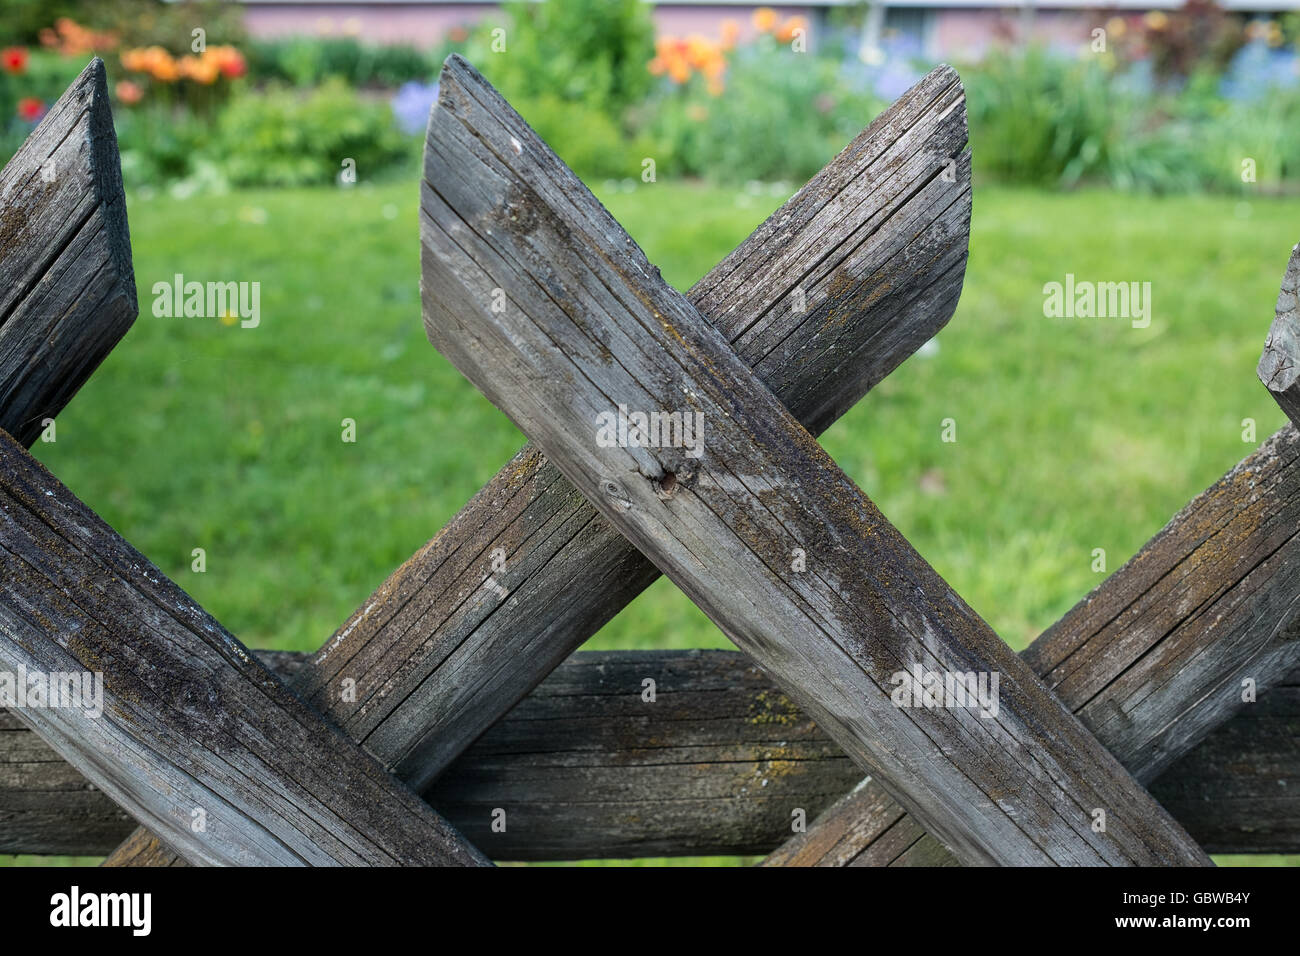 Old wooden fence in a front garden with blurred meadow and flowers - Stock Image